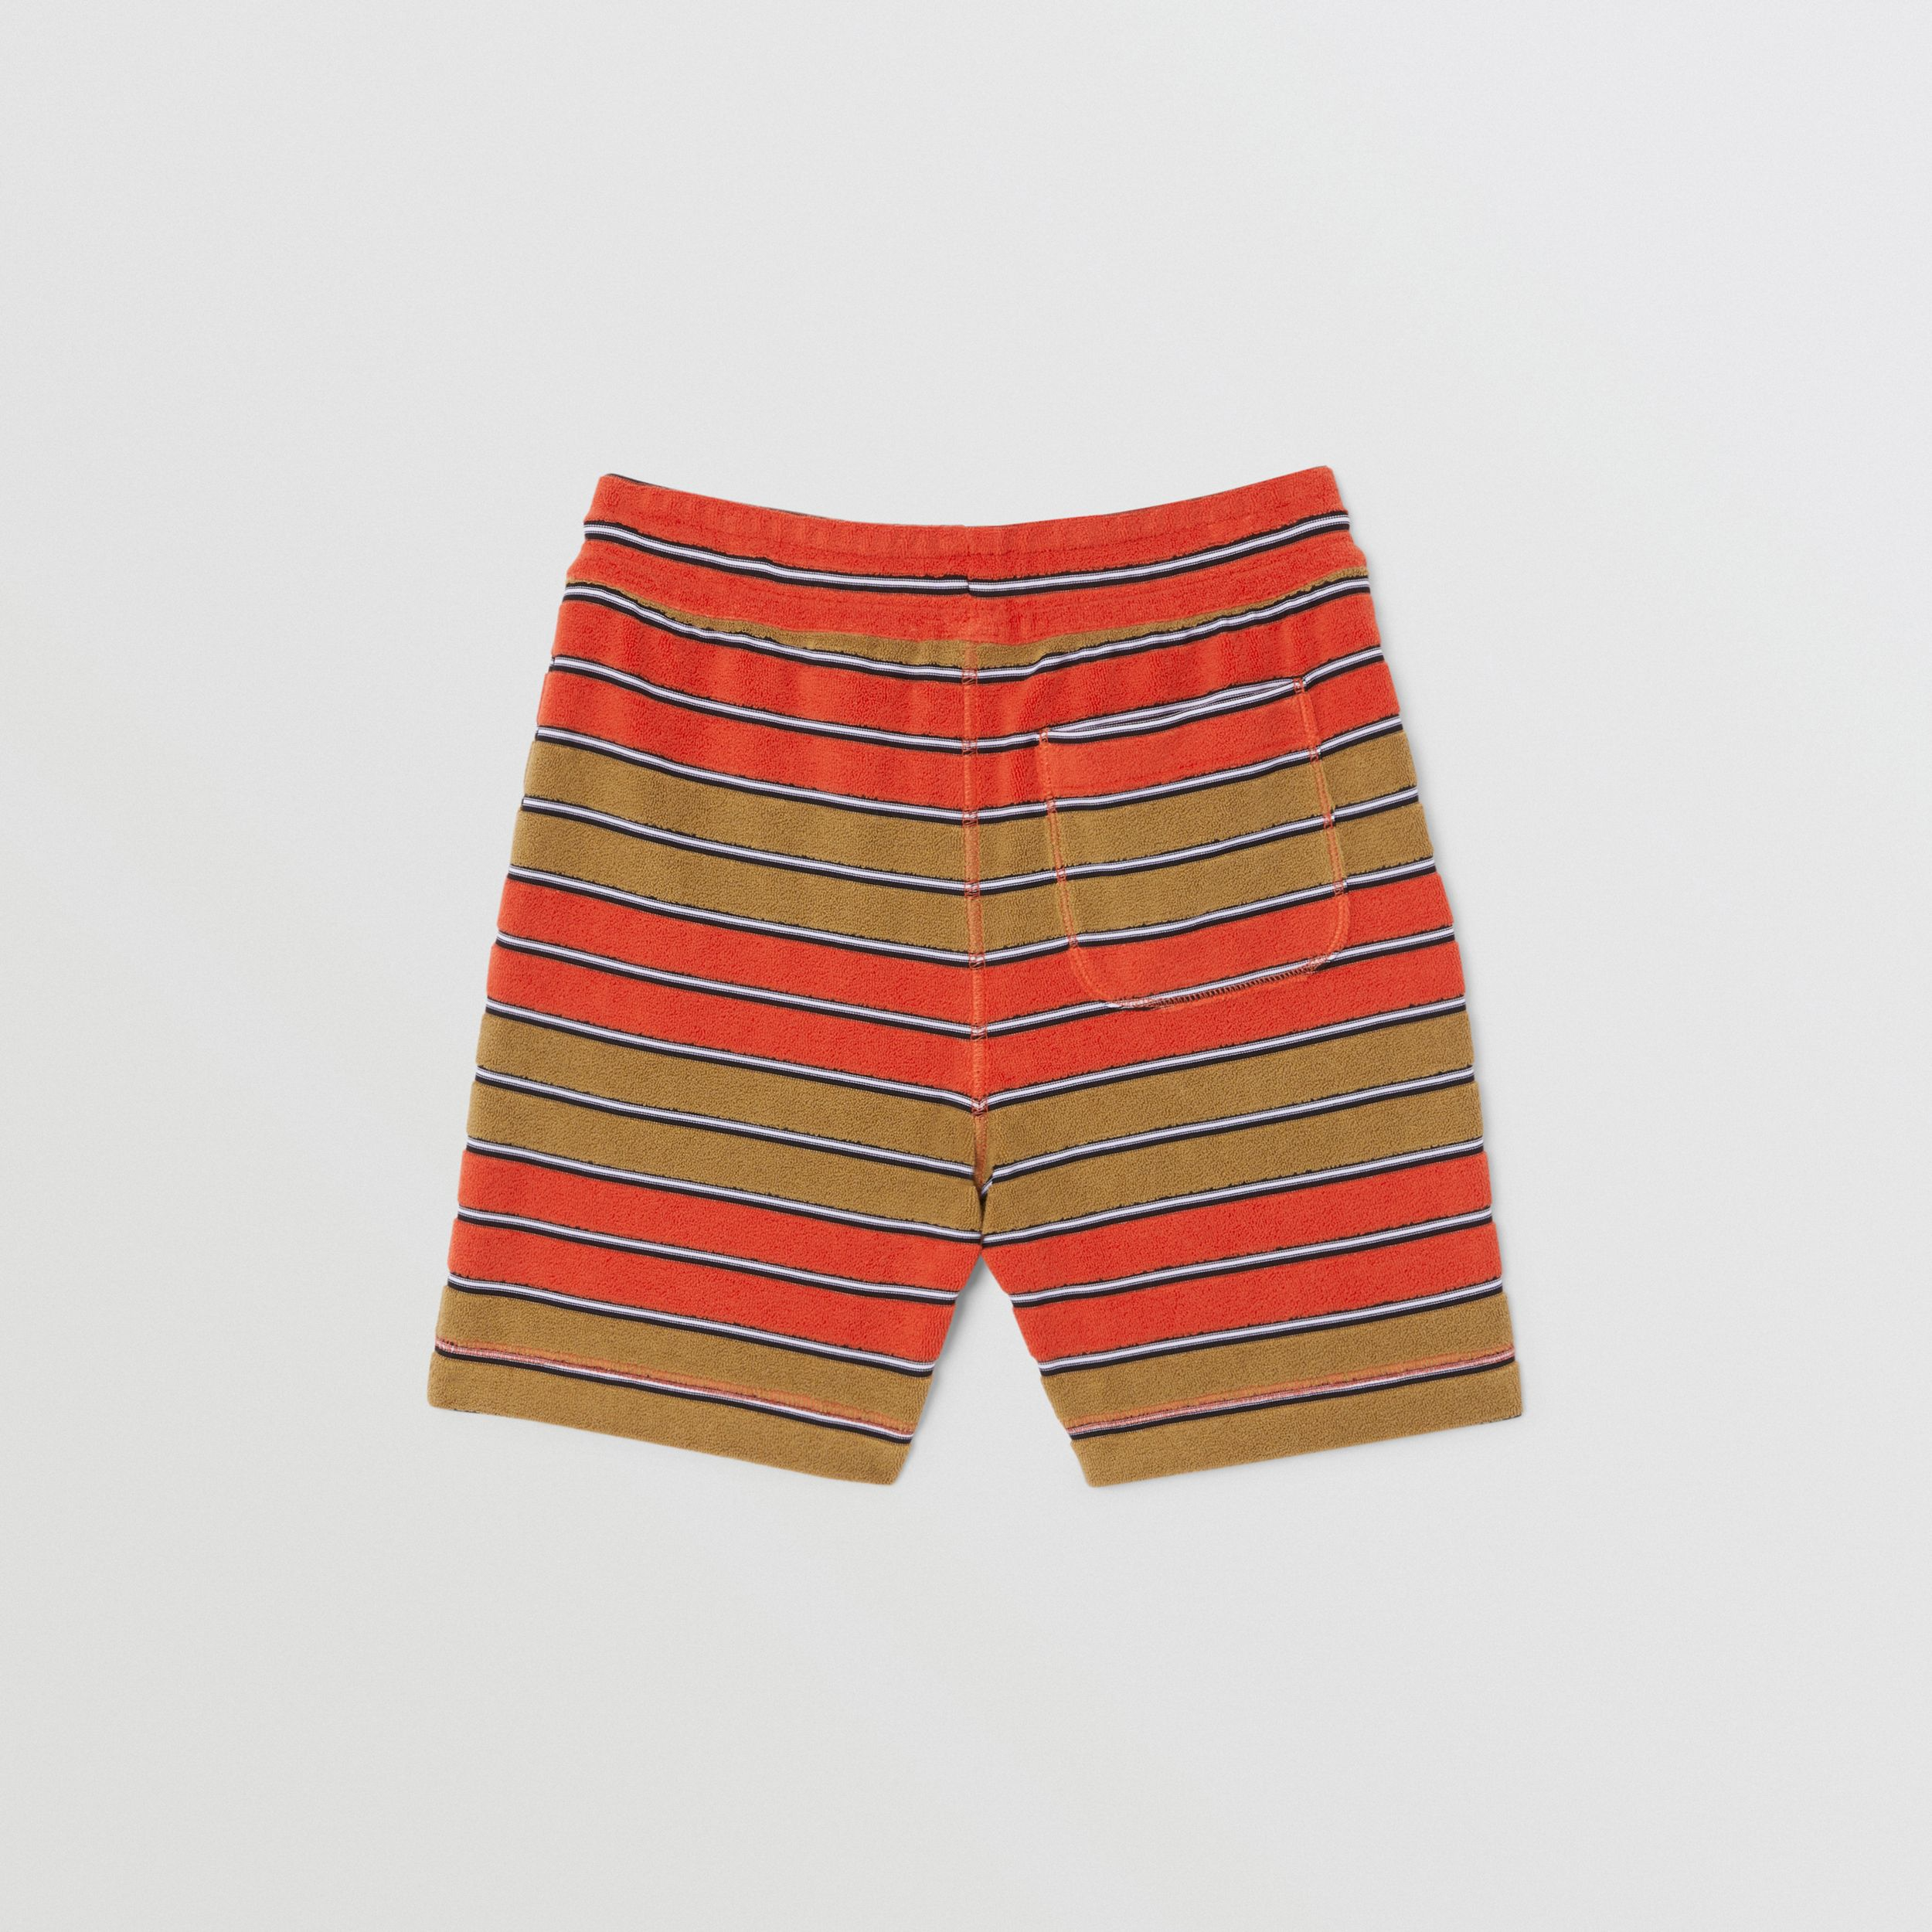 Logo Appliqué Striped Towelling Shorts in Vermilion Red | Burberry - 4